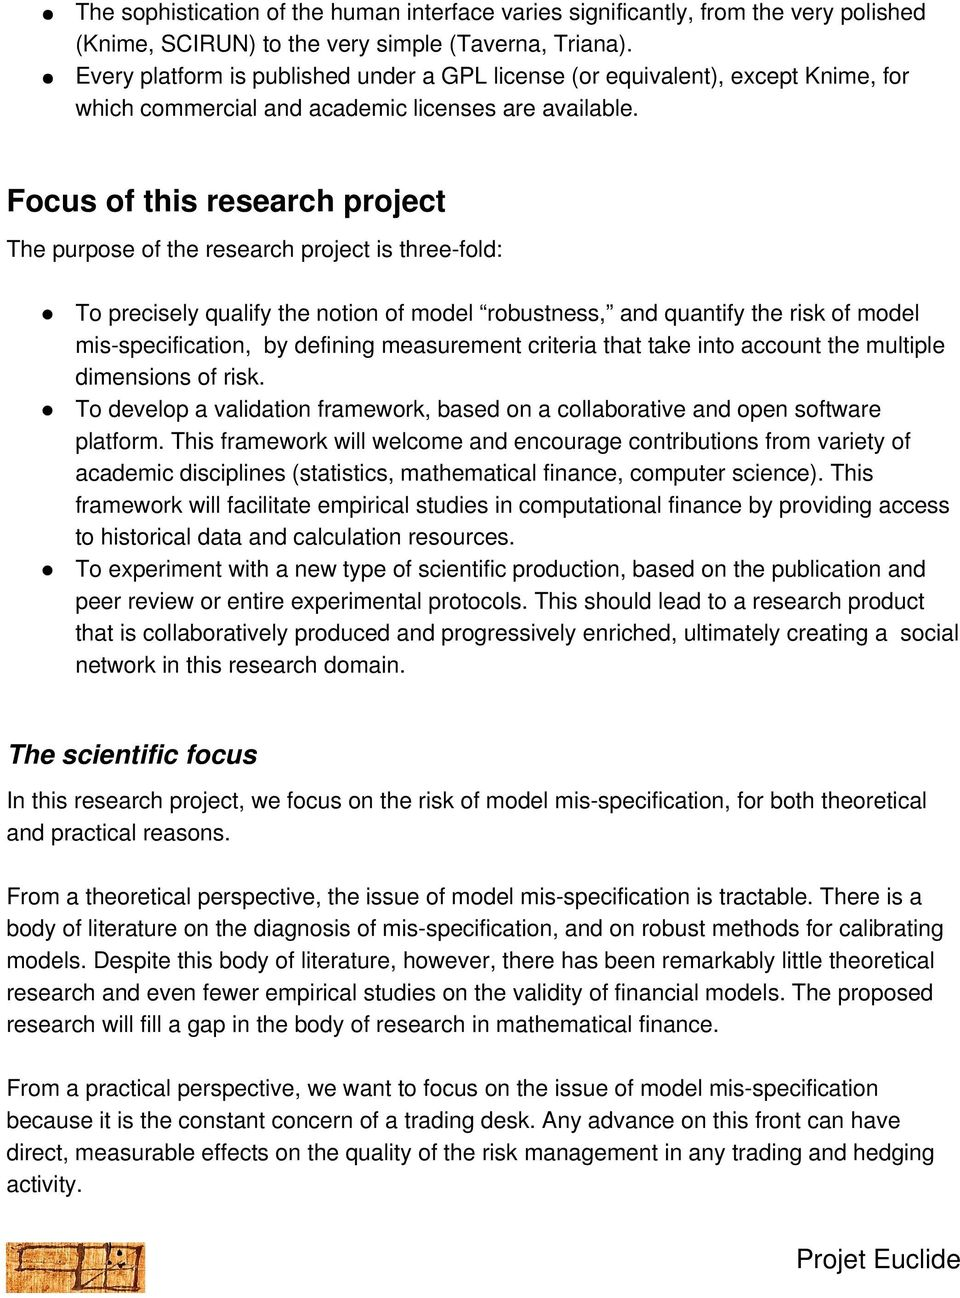 Focus of this research project The purpose of the research project is three-fold: To precisely qualify the notion of model robustness, and quantify the risk of model mis-specification, by defining